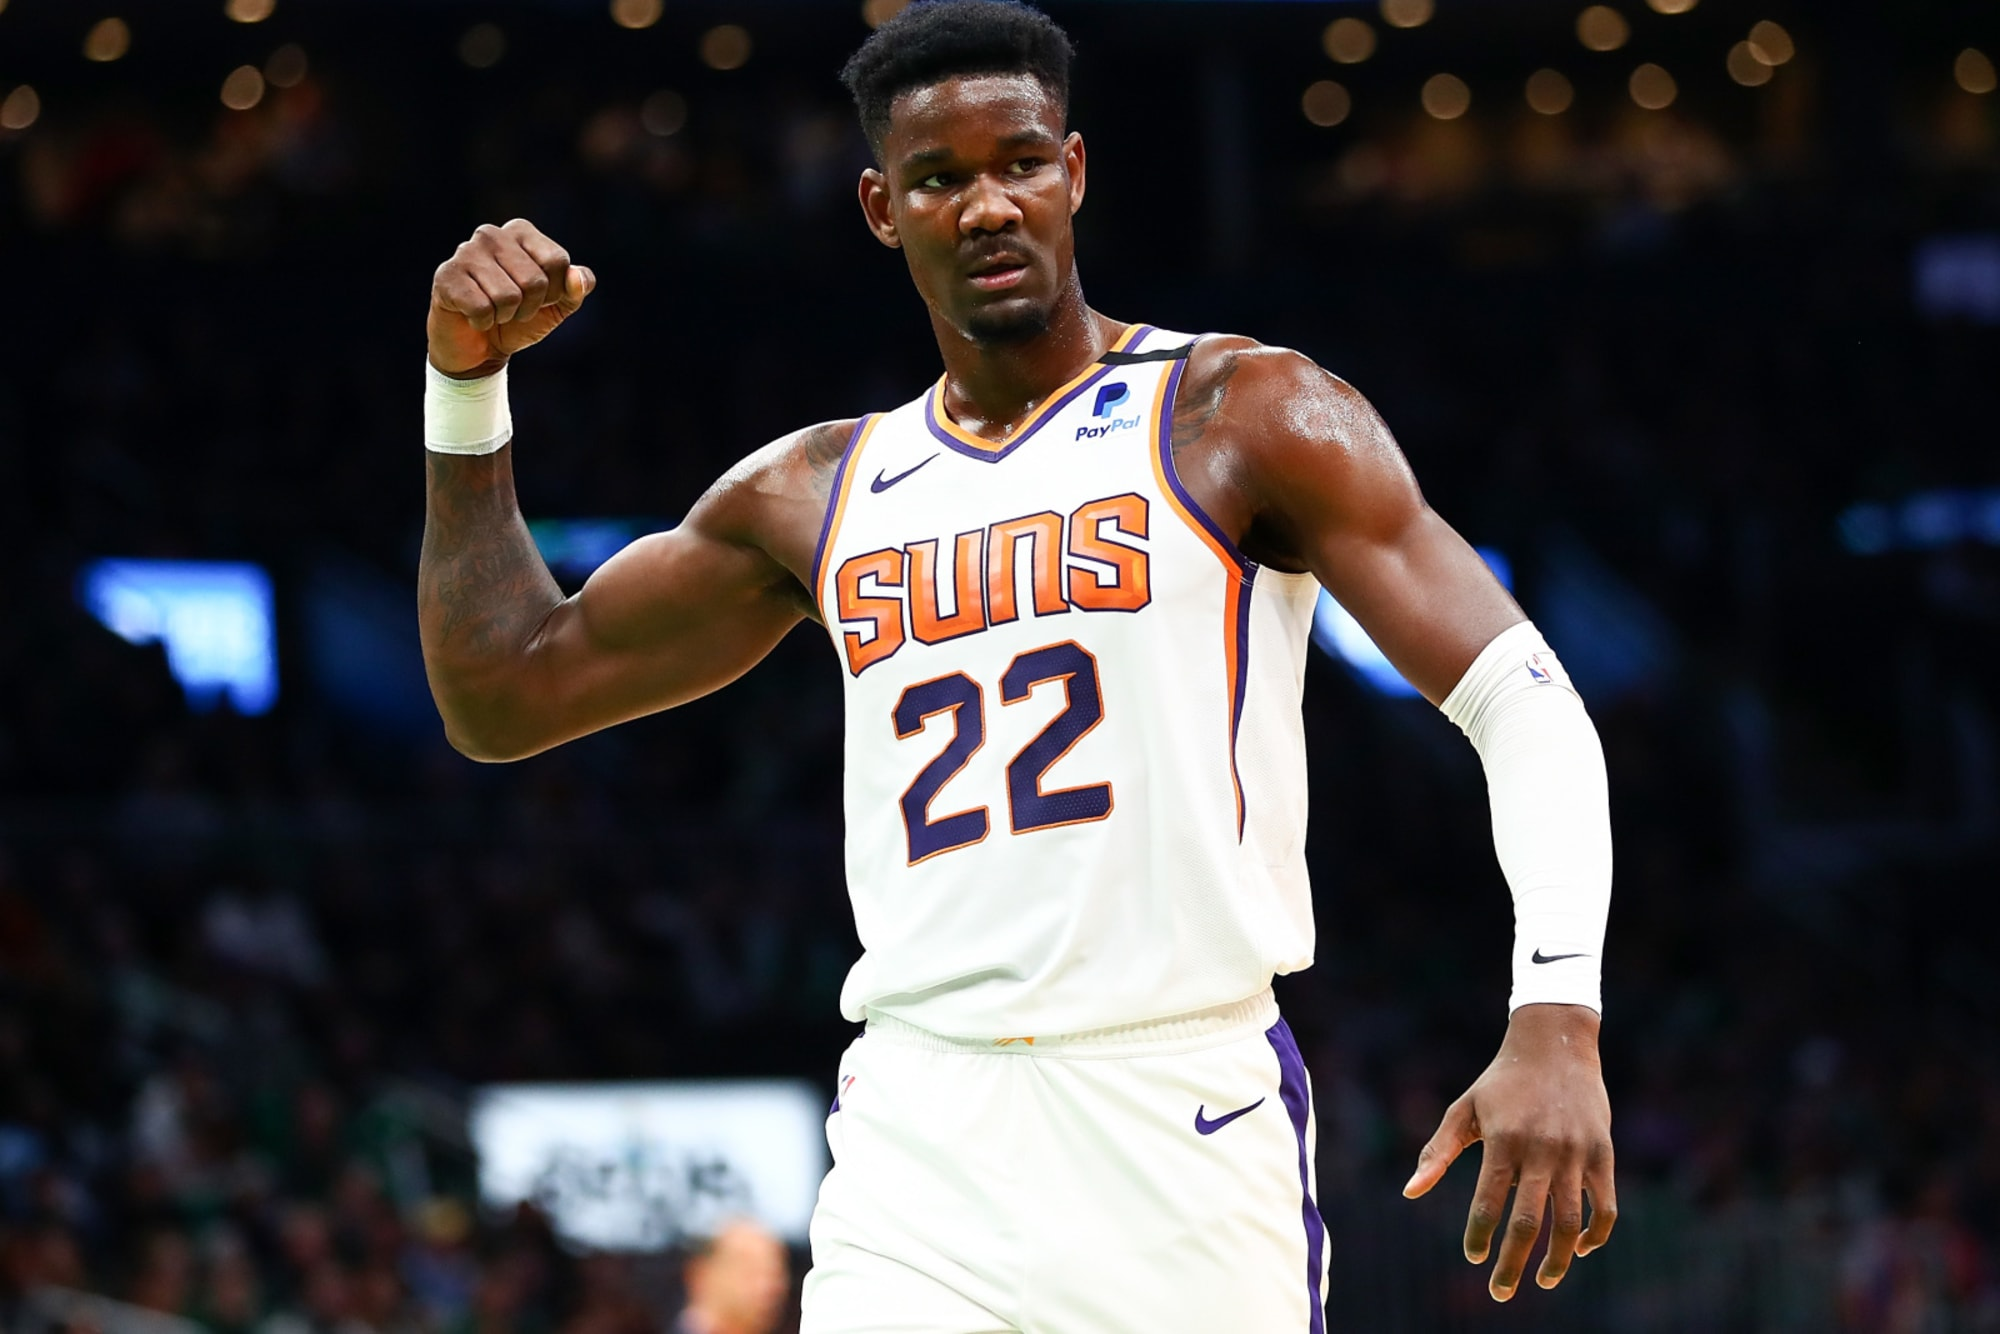 Phoenix Suns: Deandre Ayton is player with most to prove in NBA restart